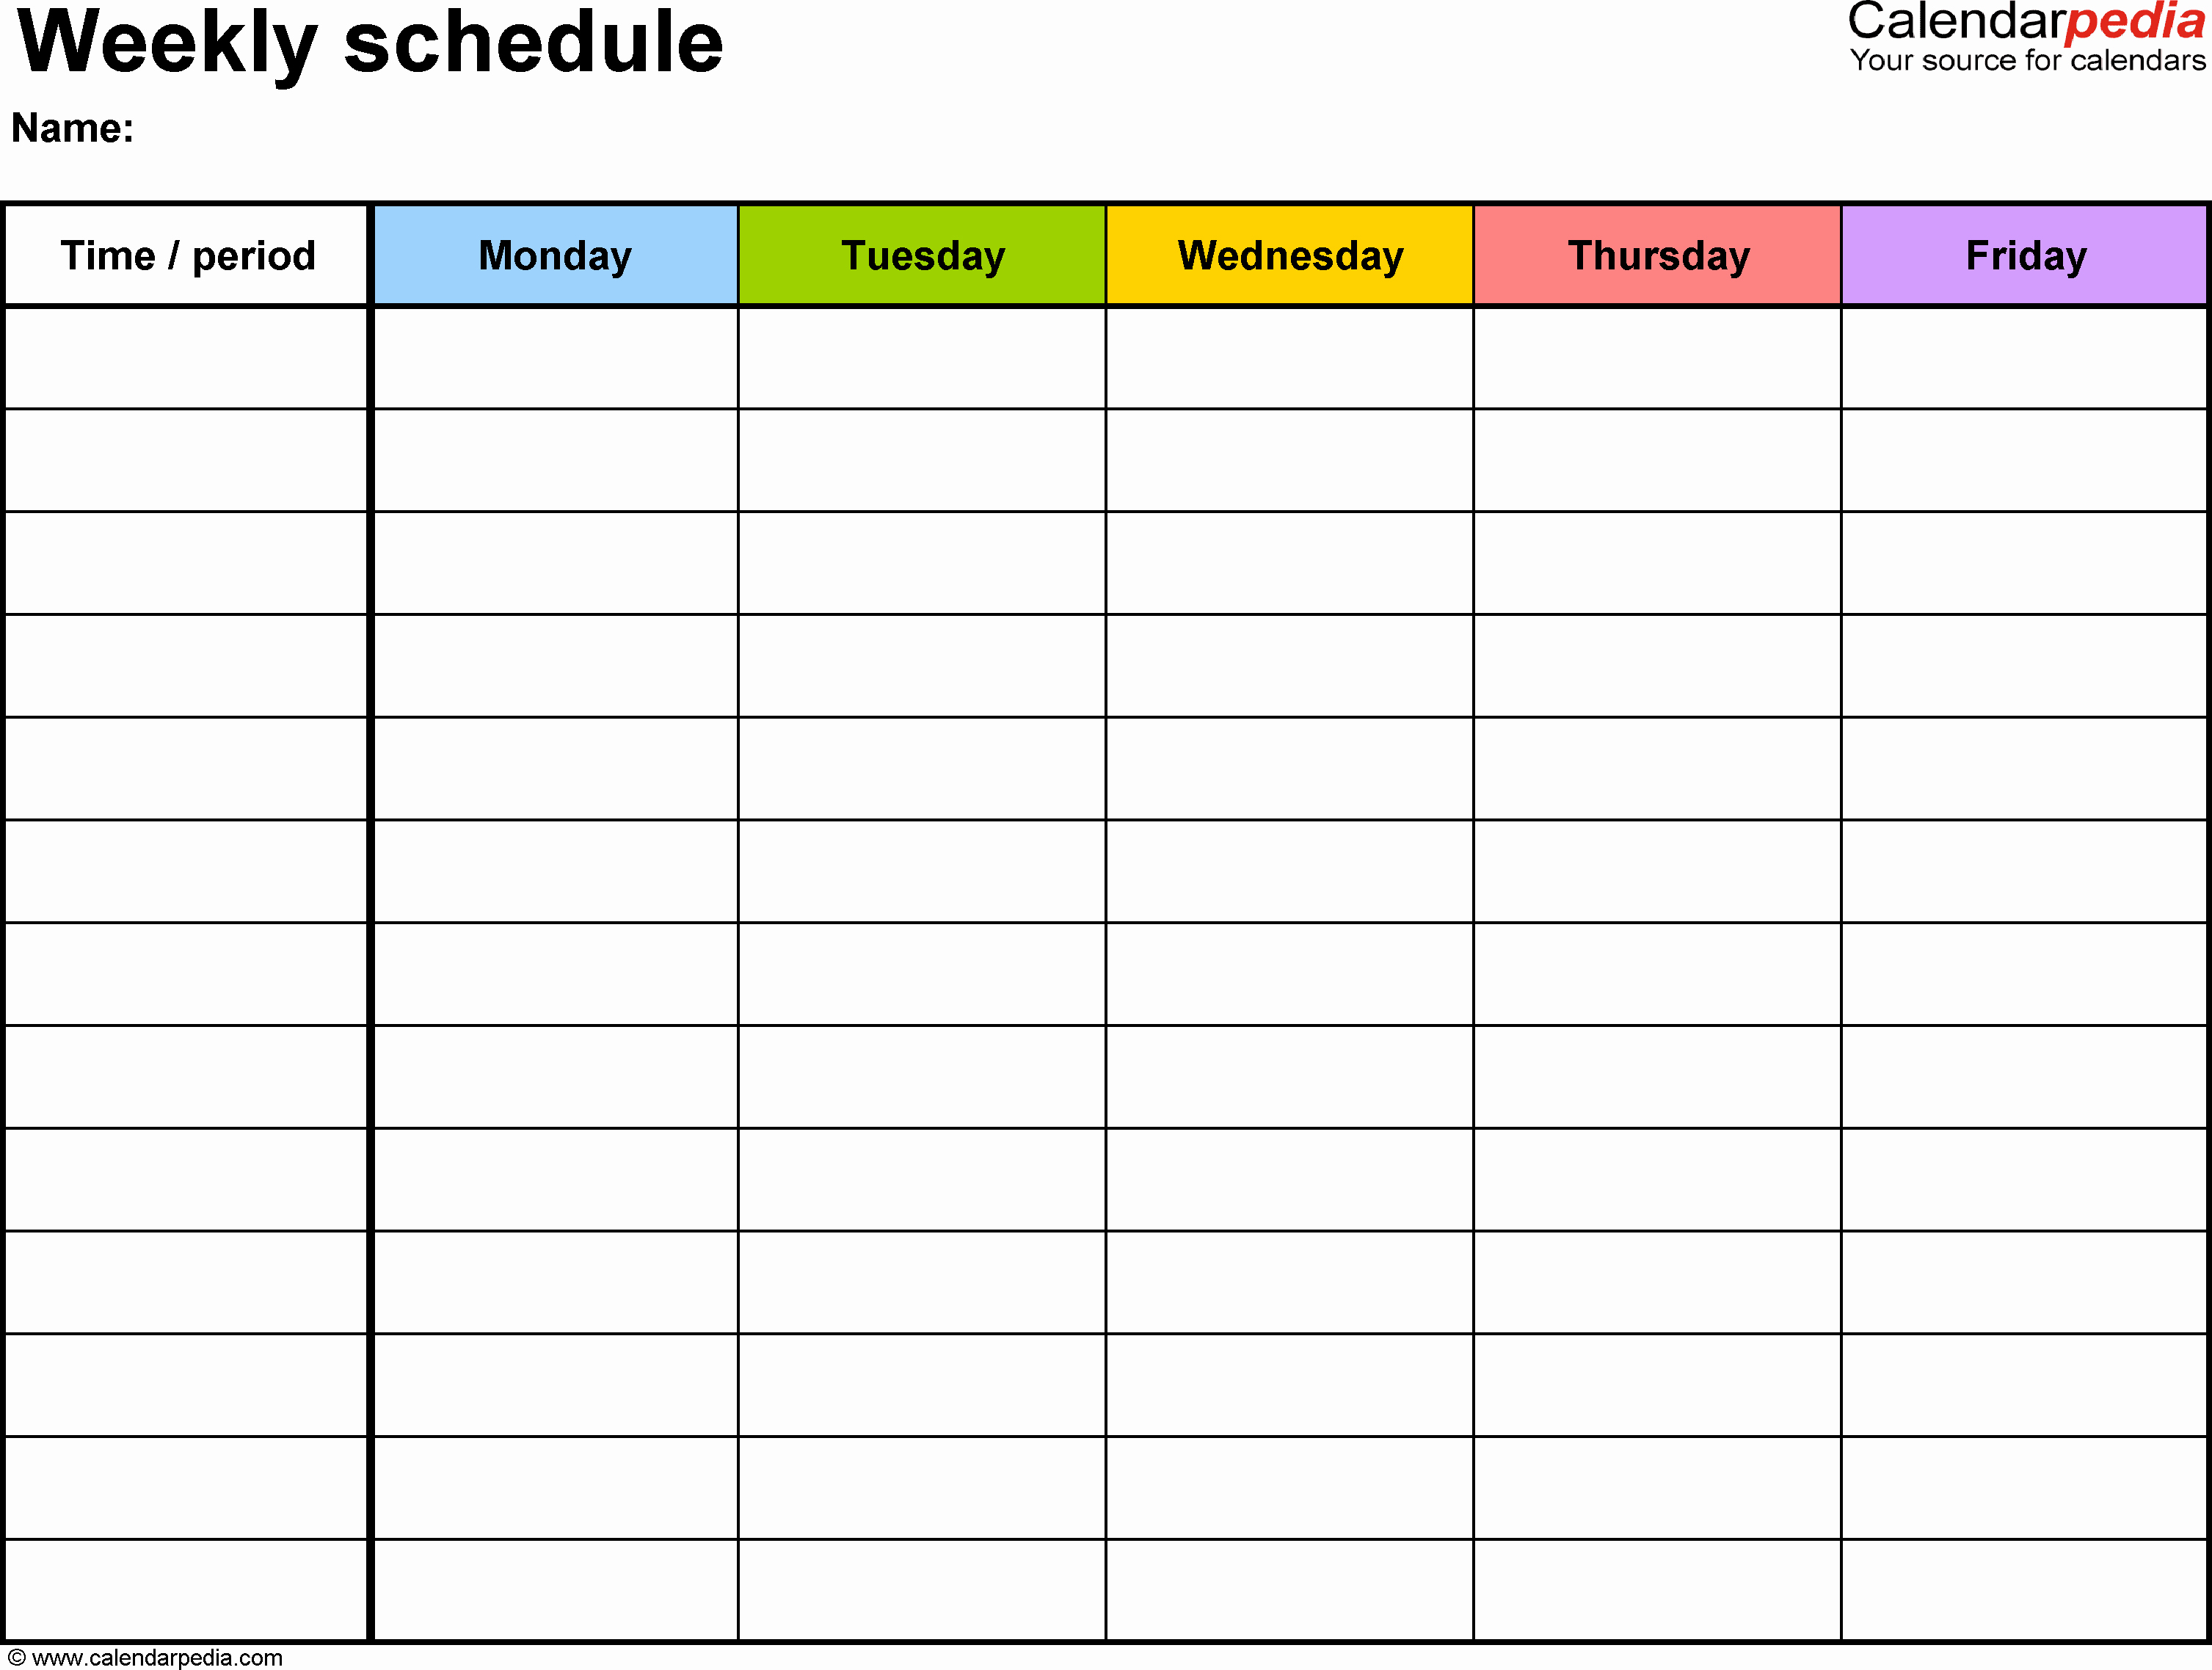 7 Day Week Calendar Template Unique Free Weekly Schedule Templates for Excel 18 Templates